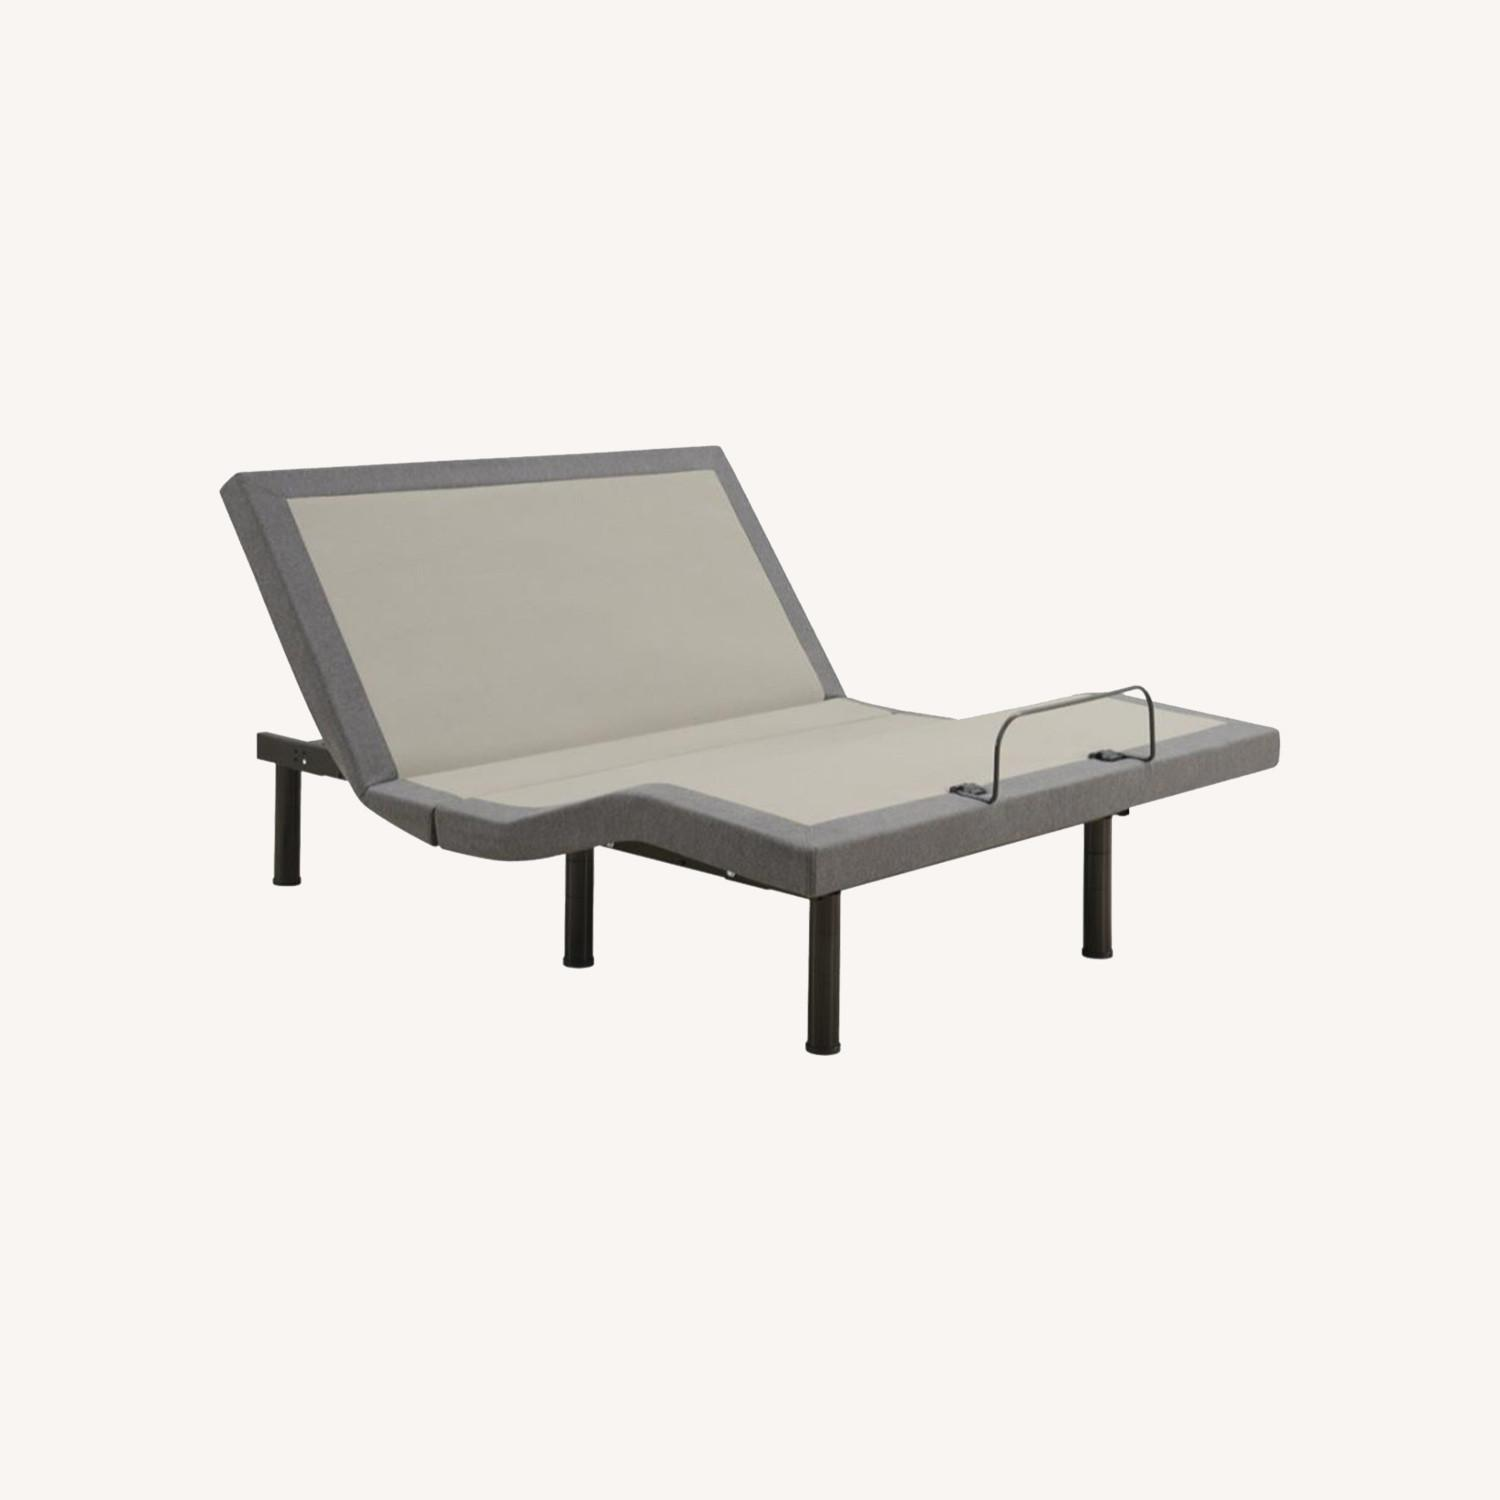 Adjustable King Bed Base In Grey Fabric - image-8